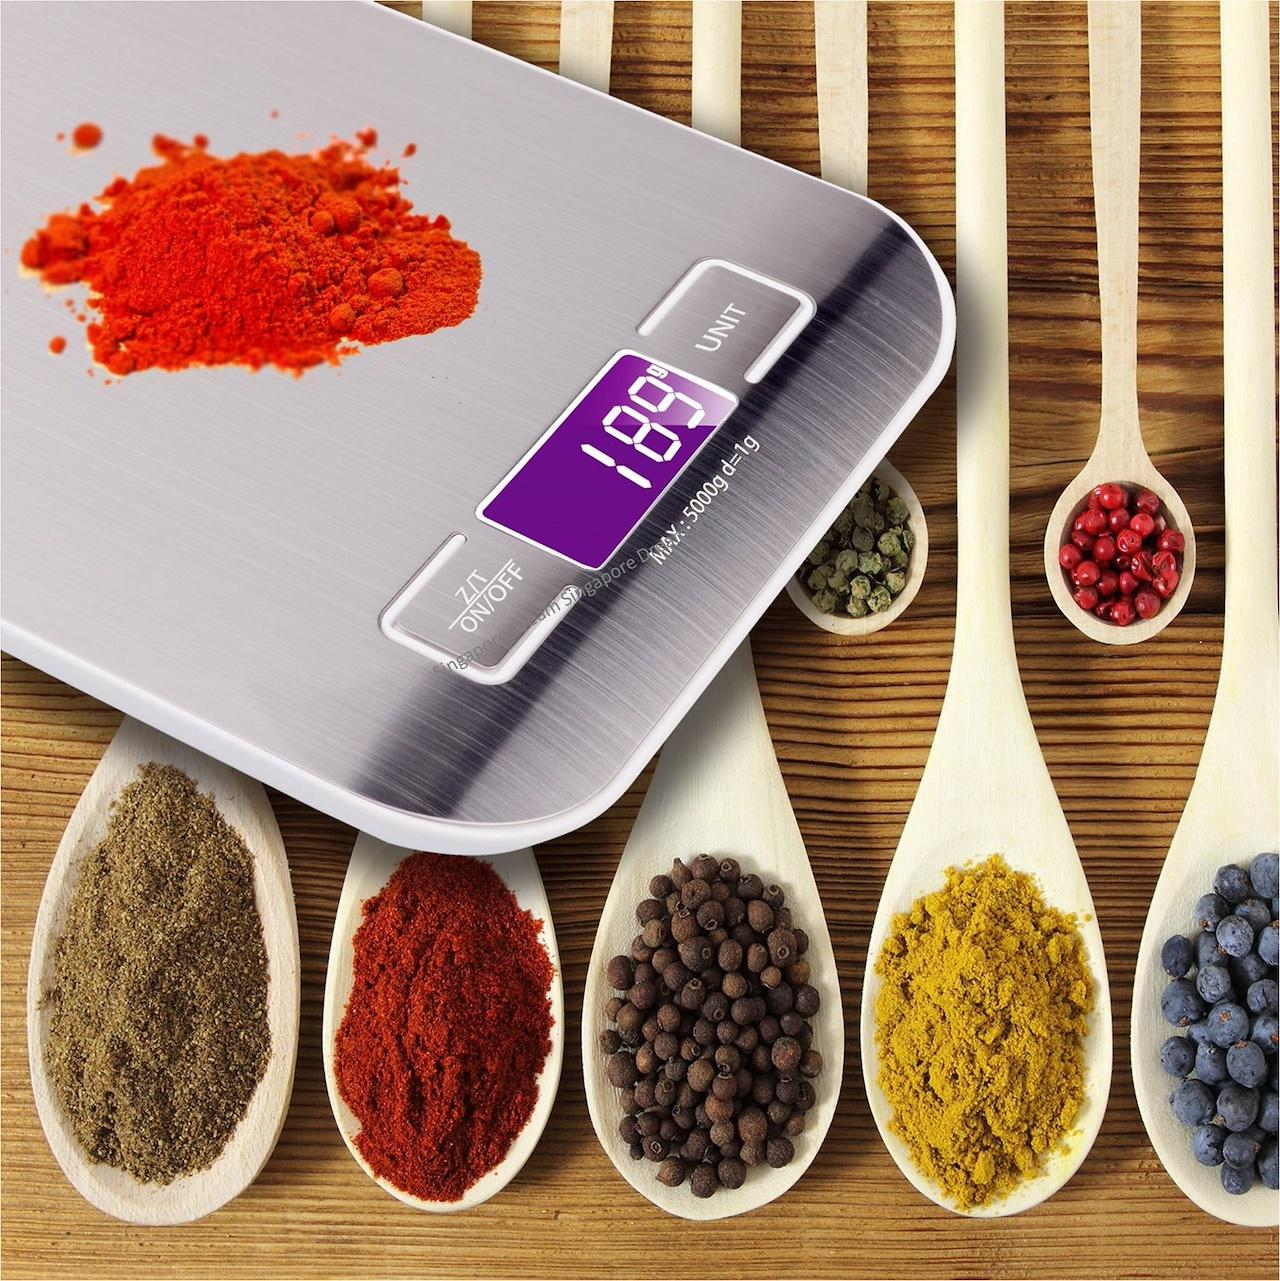 Compact Digital Kitchen Food Weighing Scale 5kg 11lbs / Lcd Digital Scale / Ideal For Baking Cooking By Singapore Dream.